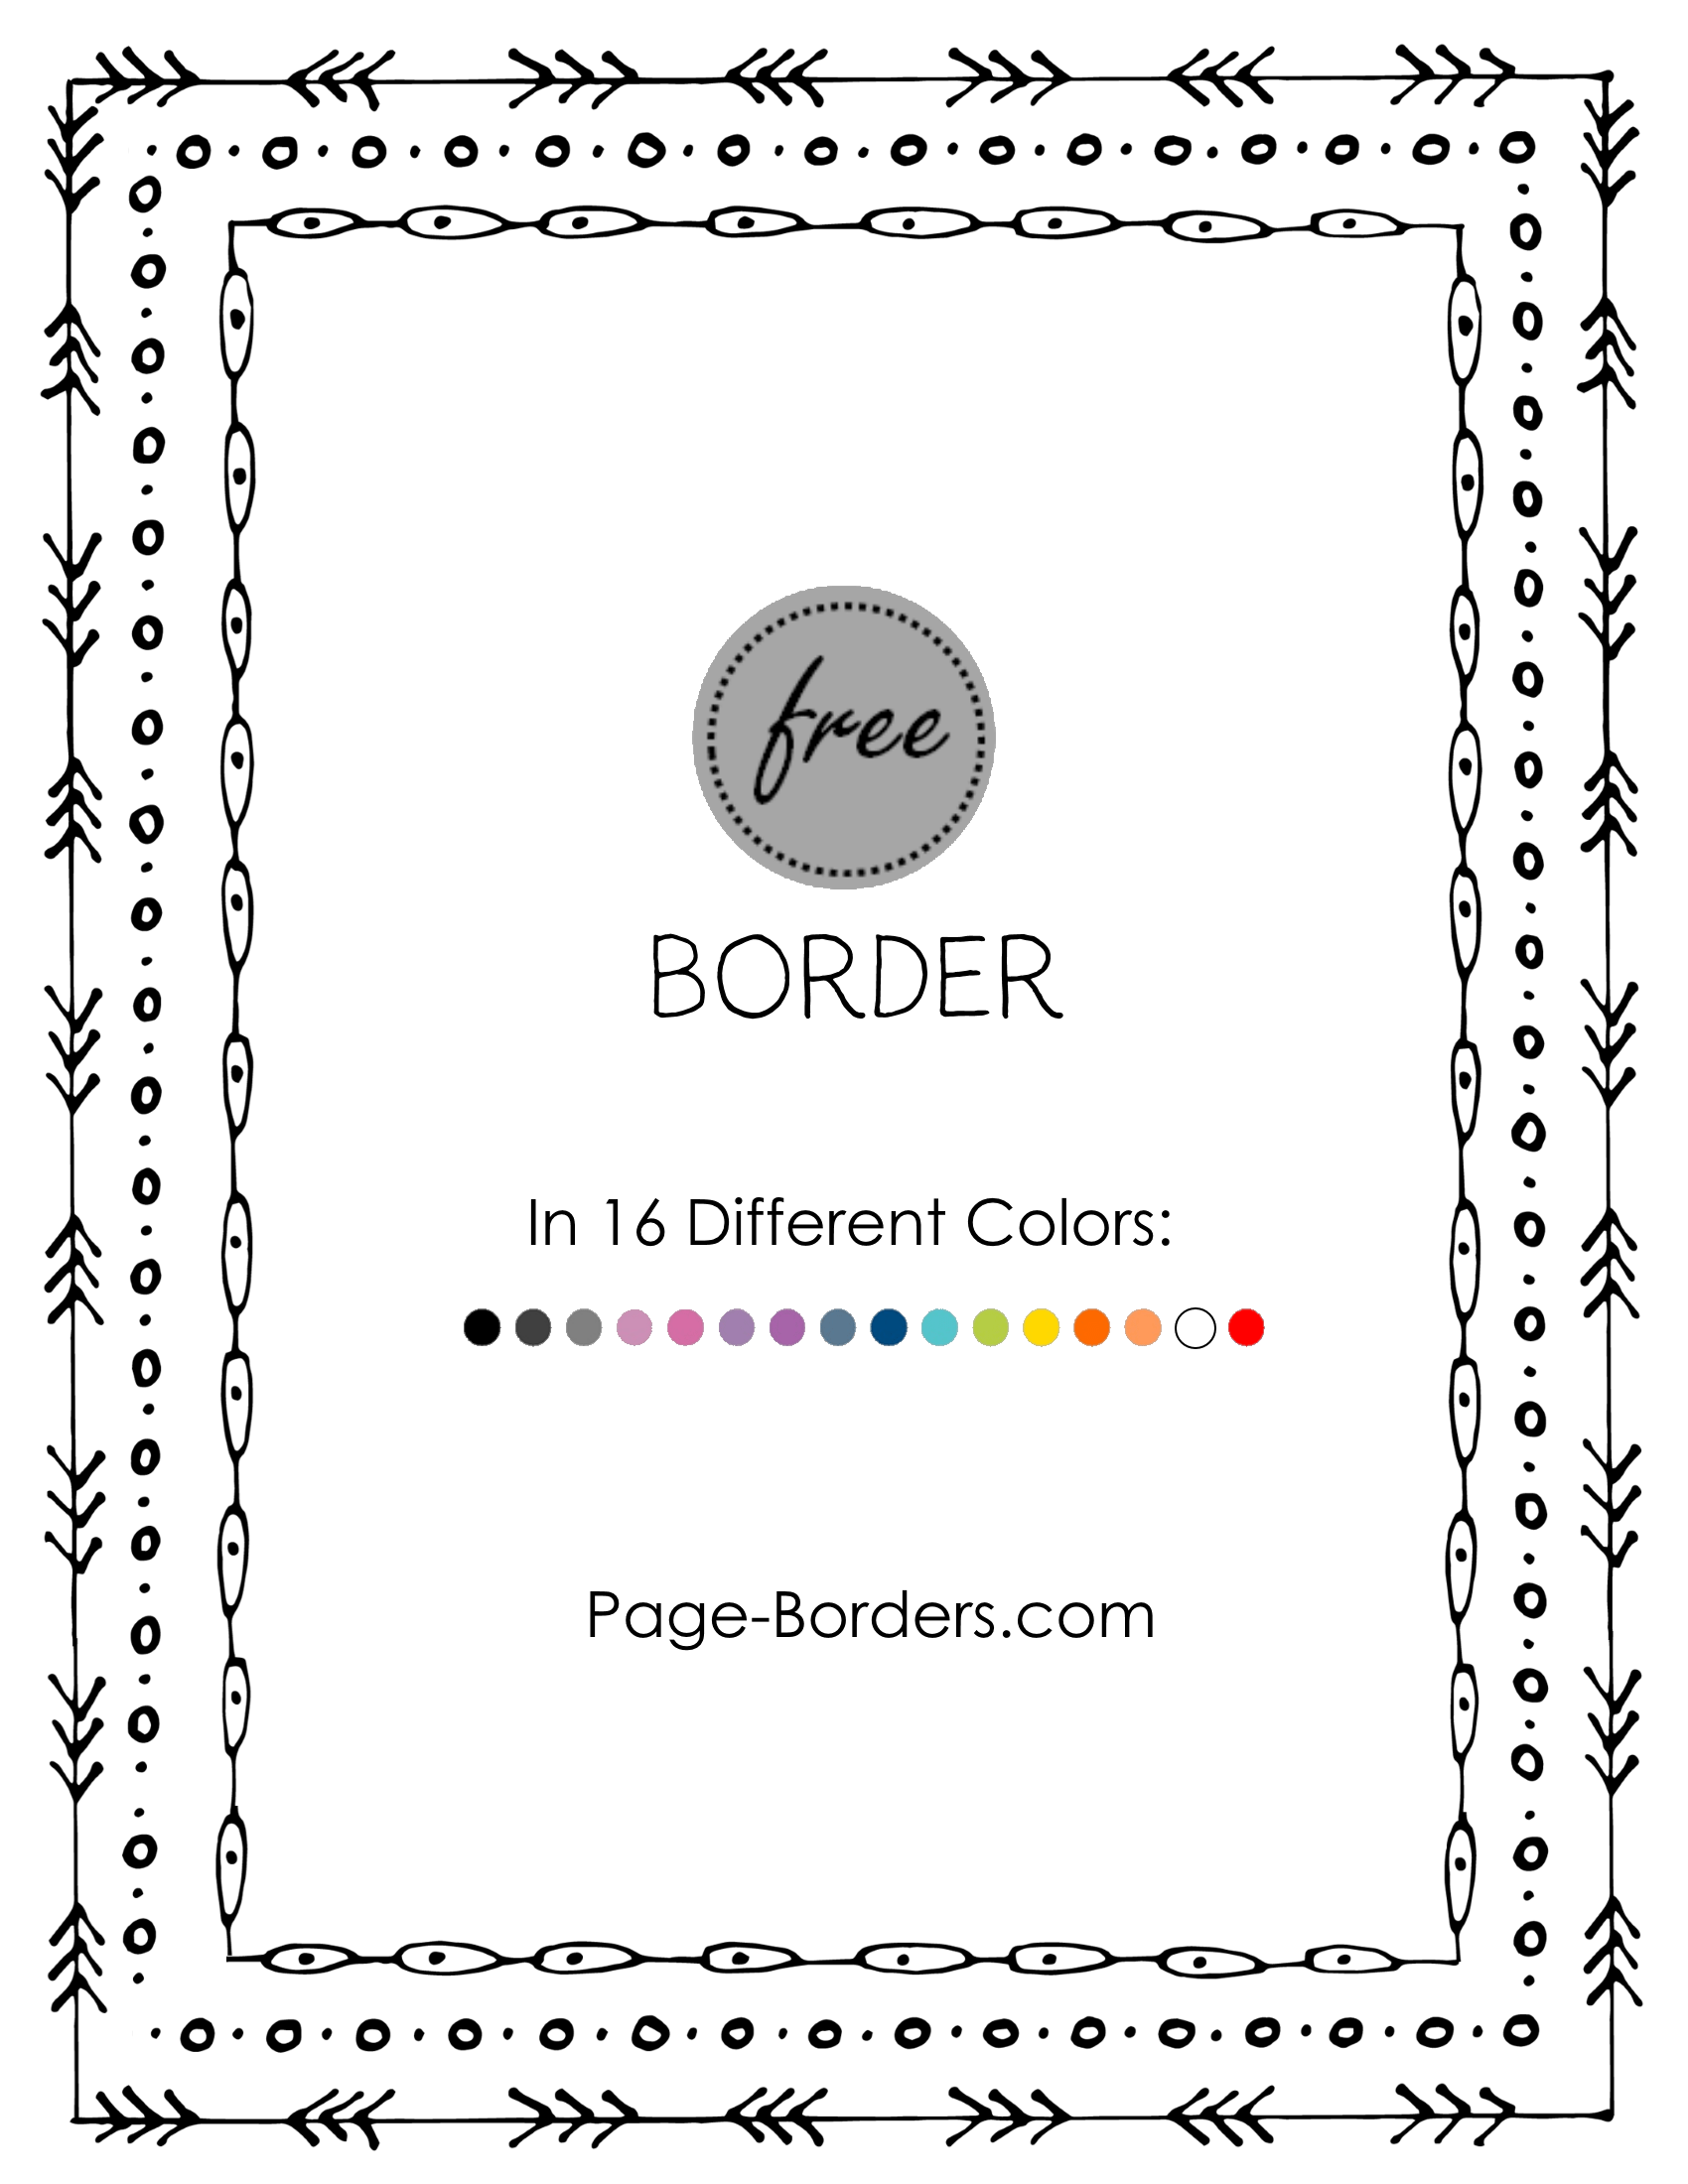 Free doodle png. Border customize online and